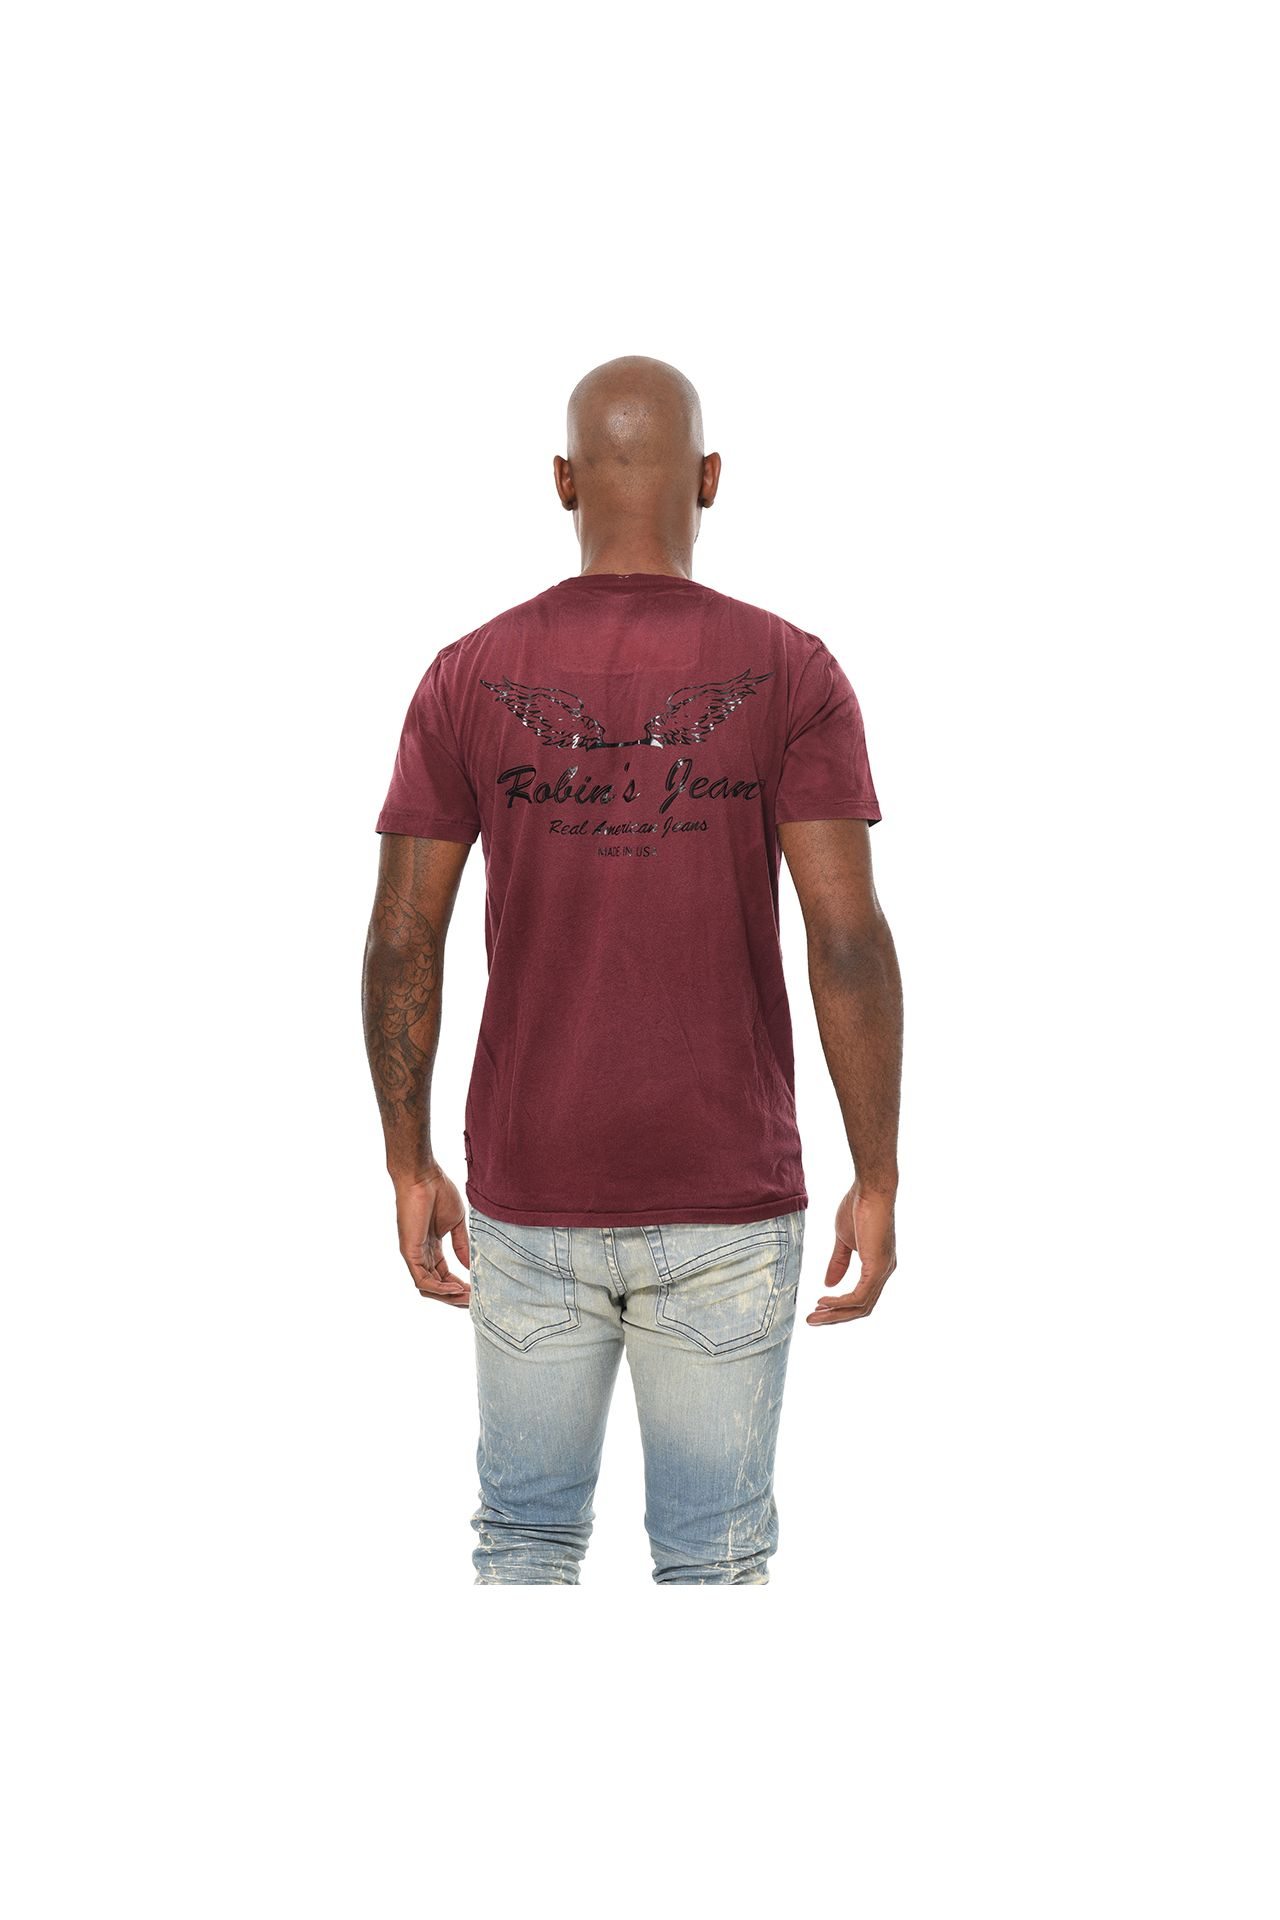 BAR WINGS BLACK FOIL TEE IN 4D DARK MALBEC